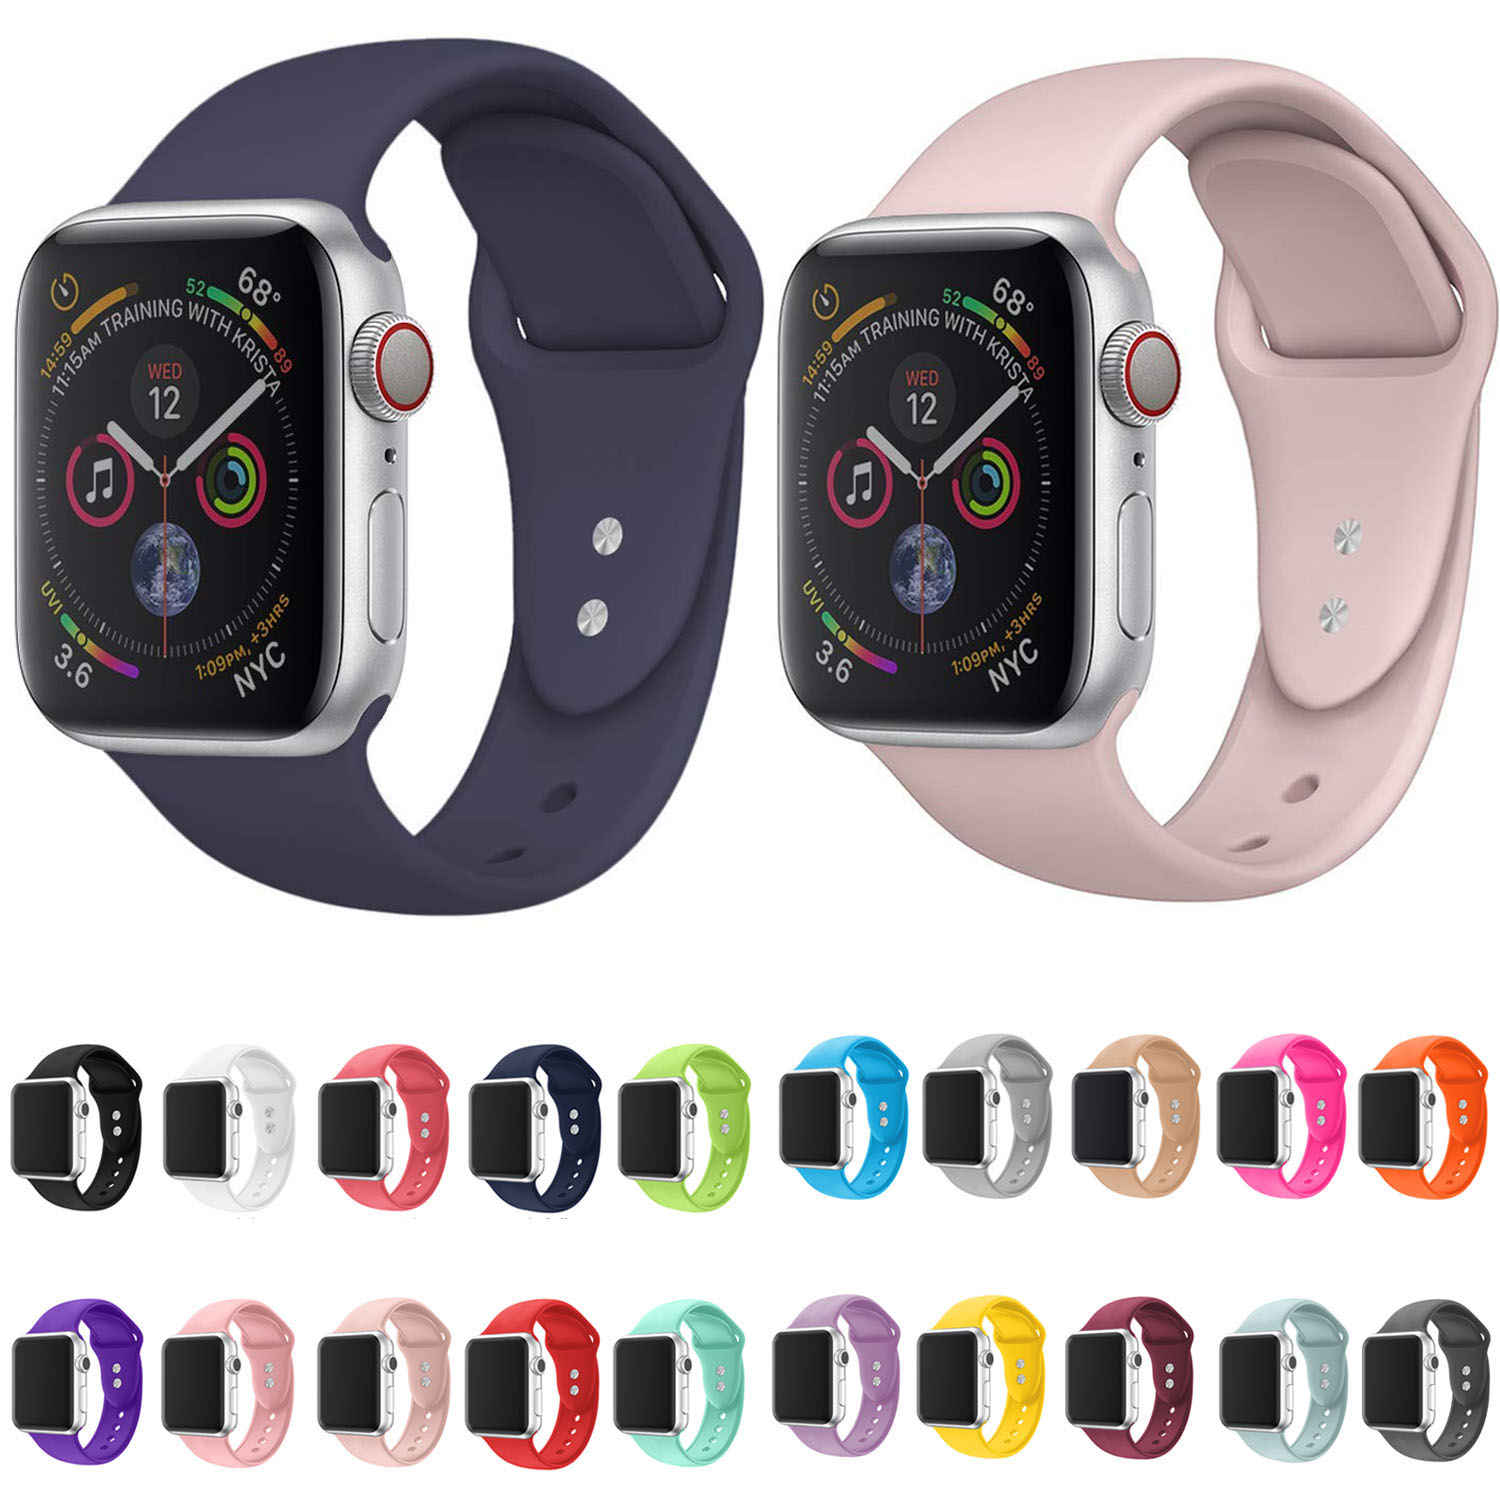 buy popular 36d9c aaa6f US $3.45 27% OFF|Pink Sand Sport Silicone Strap For Apple Watch Band  44mm/42mm 40mm/38mm Series 4/3/2/1 iWatch Rubber Band Bracelet-in  Watchbands from ...